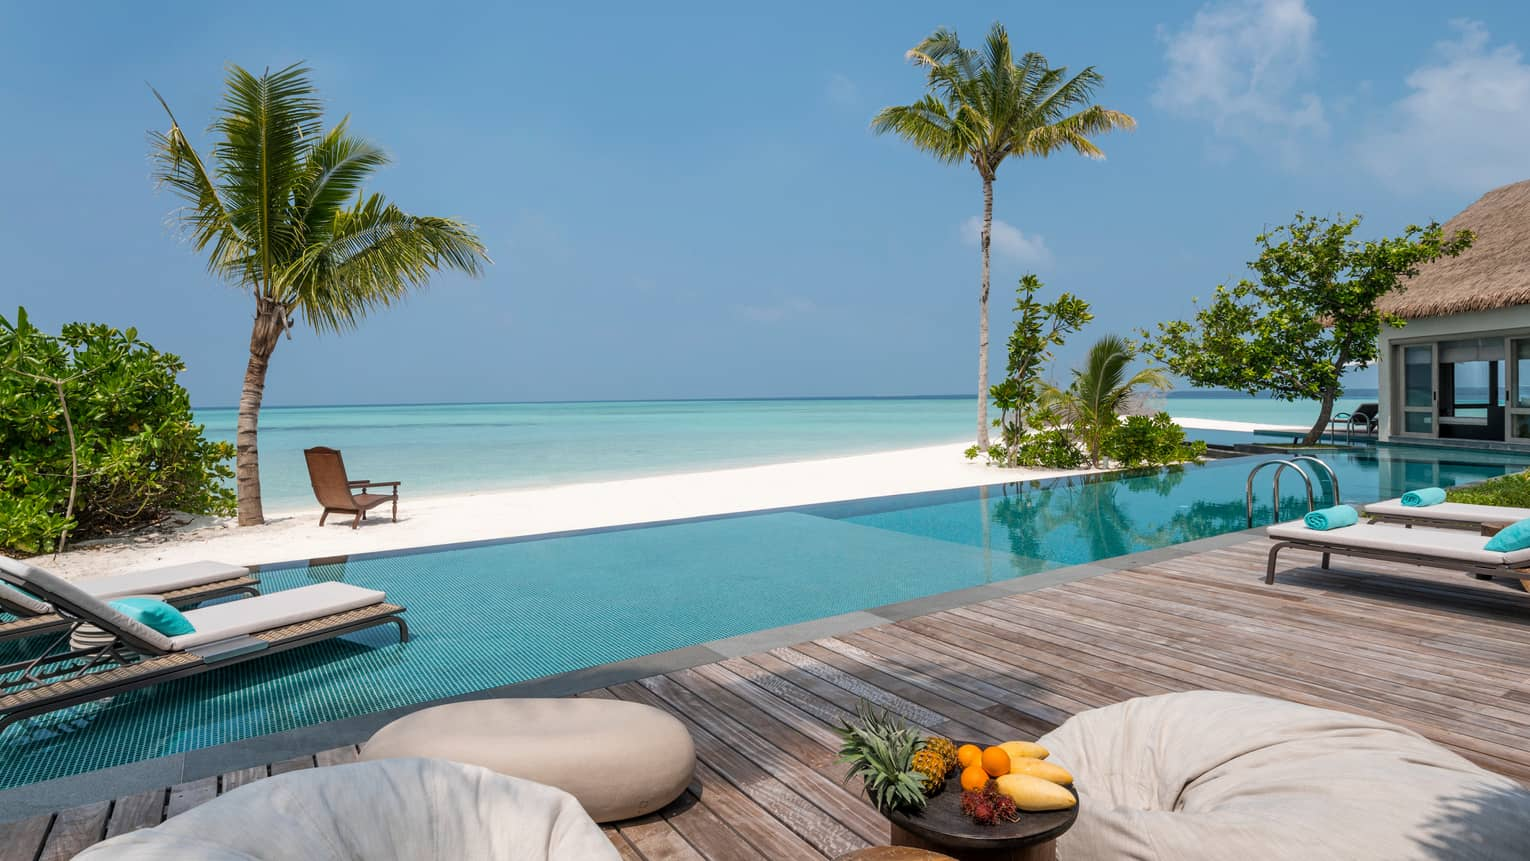 Three-Bedroom Beach Villa fresh fruit on platter on deck by swimming pool, beach